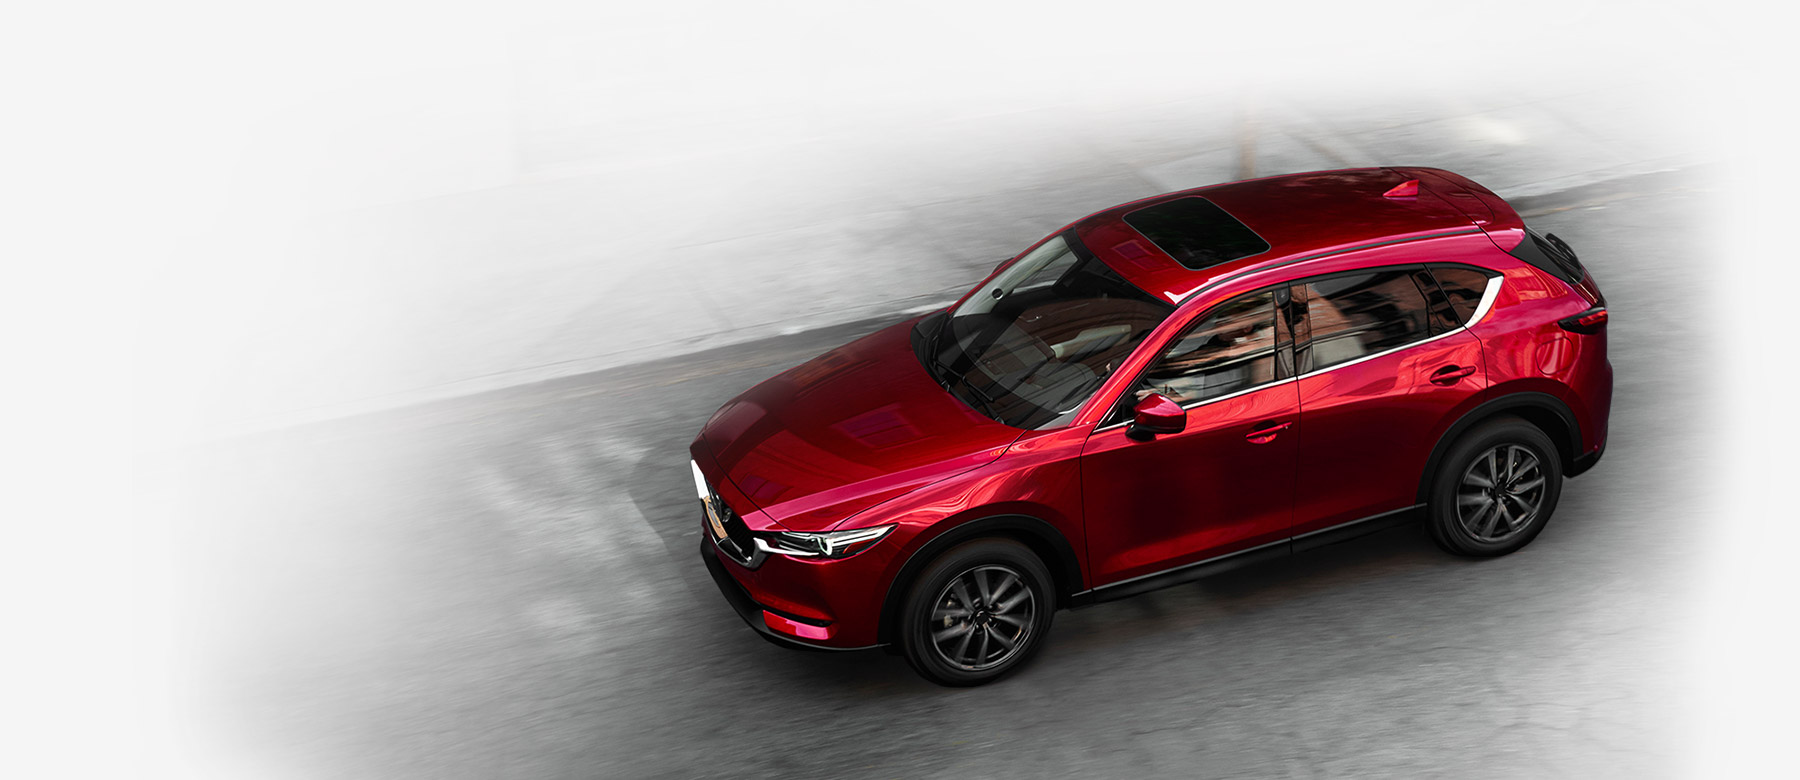 2017 Mazda CX-5 reviews and awards